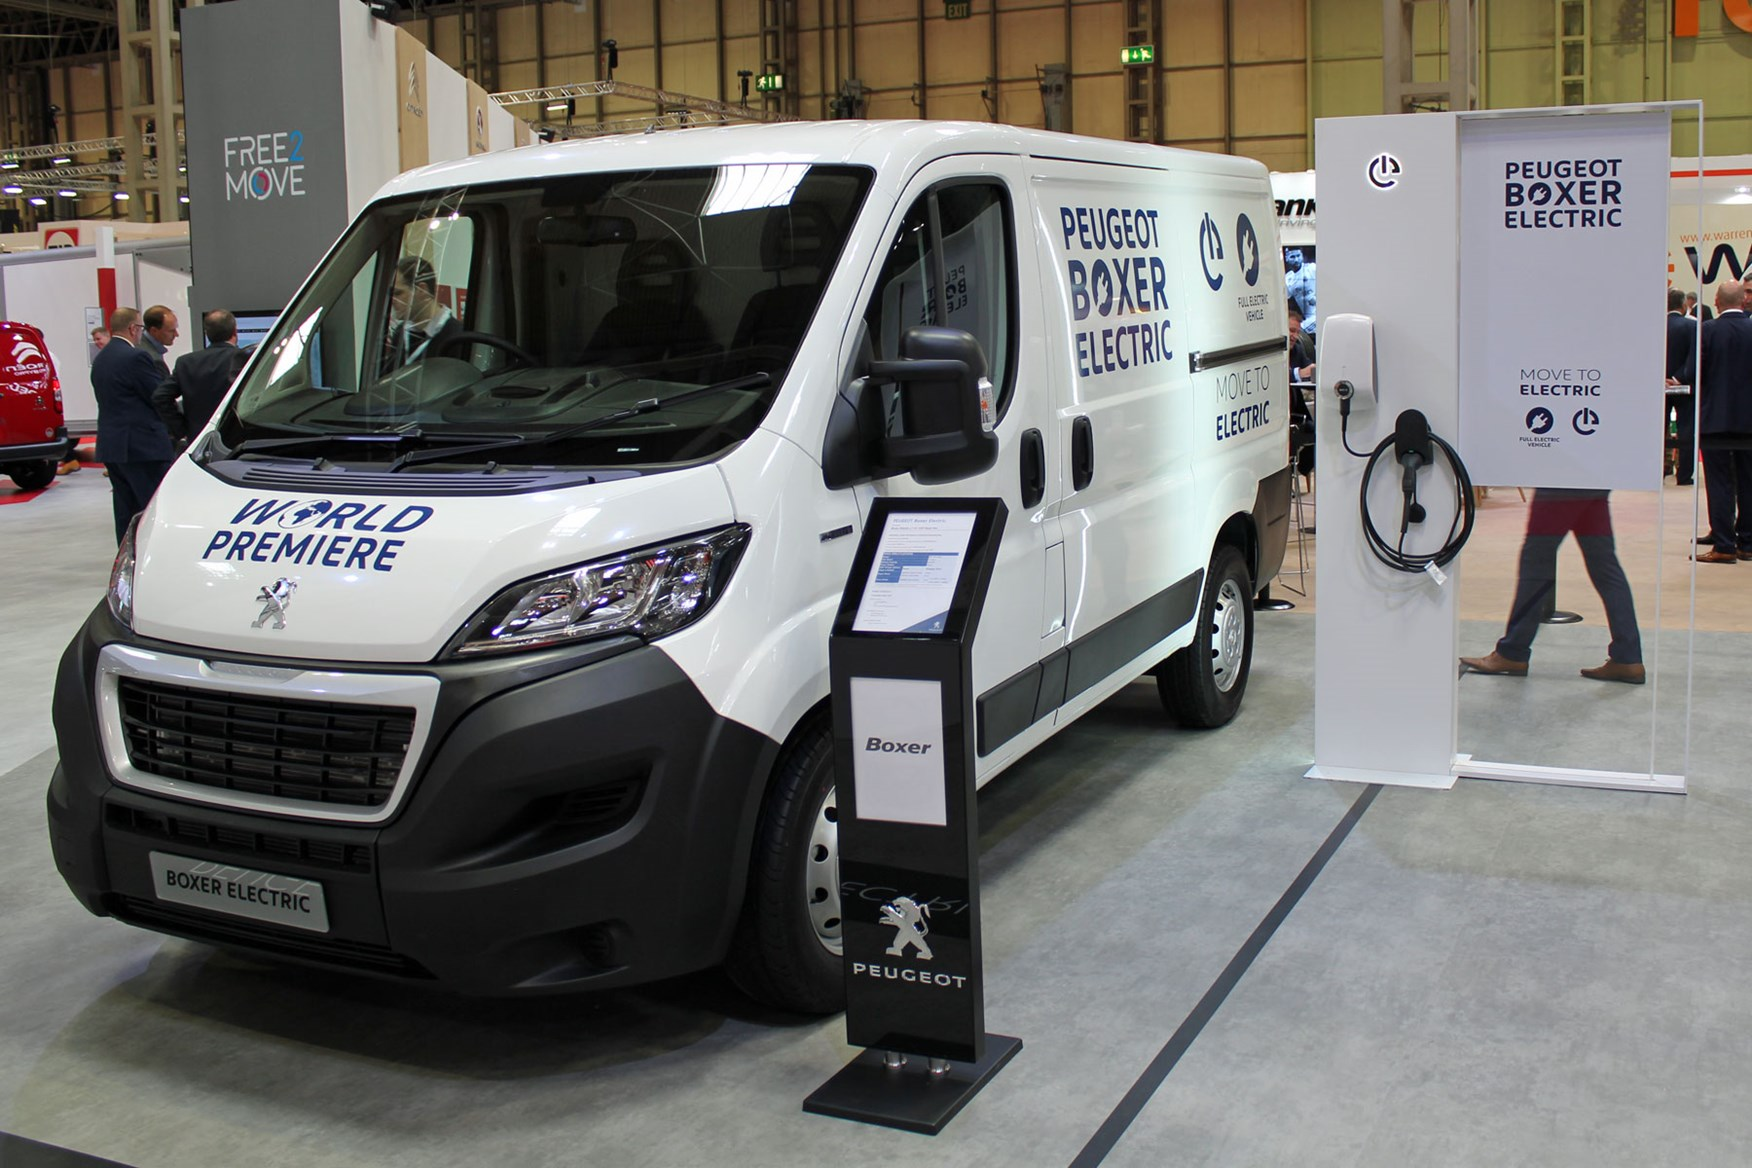 Peugeot Boxer Electric at the CV Show 2019